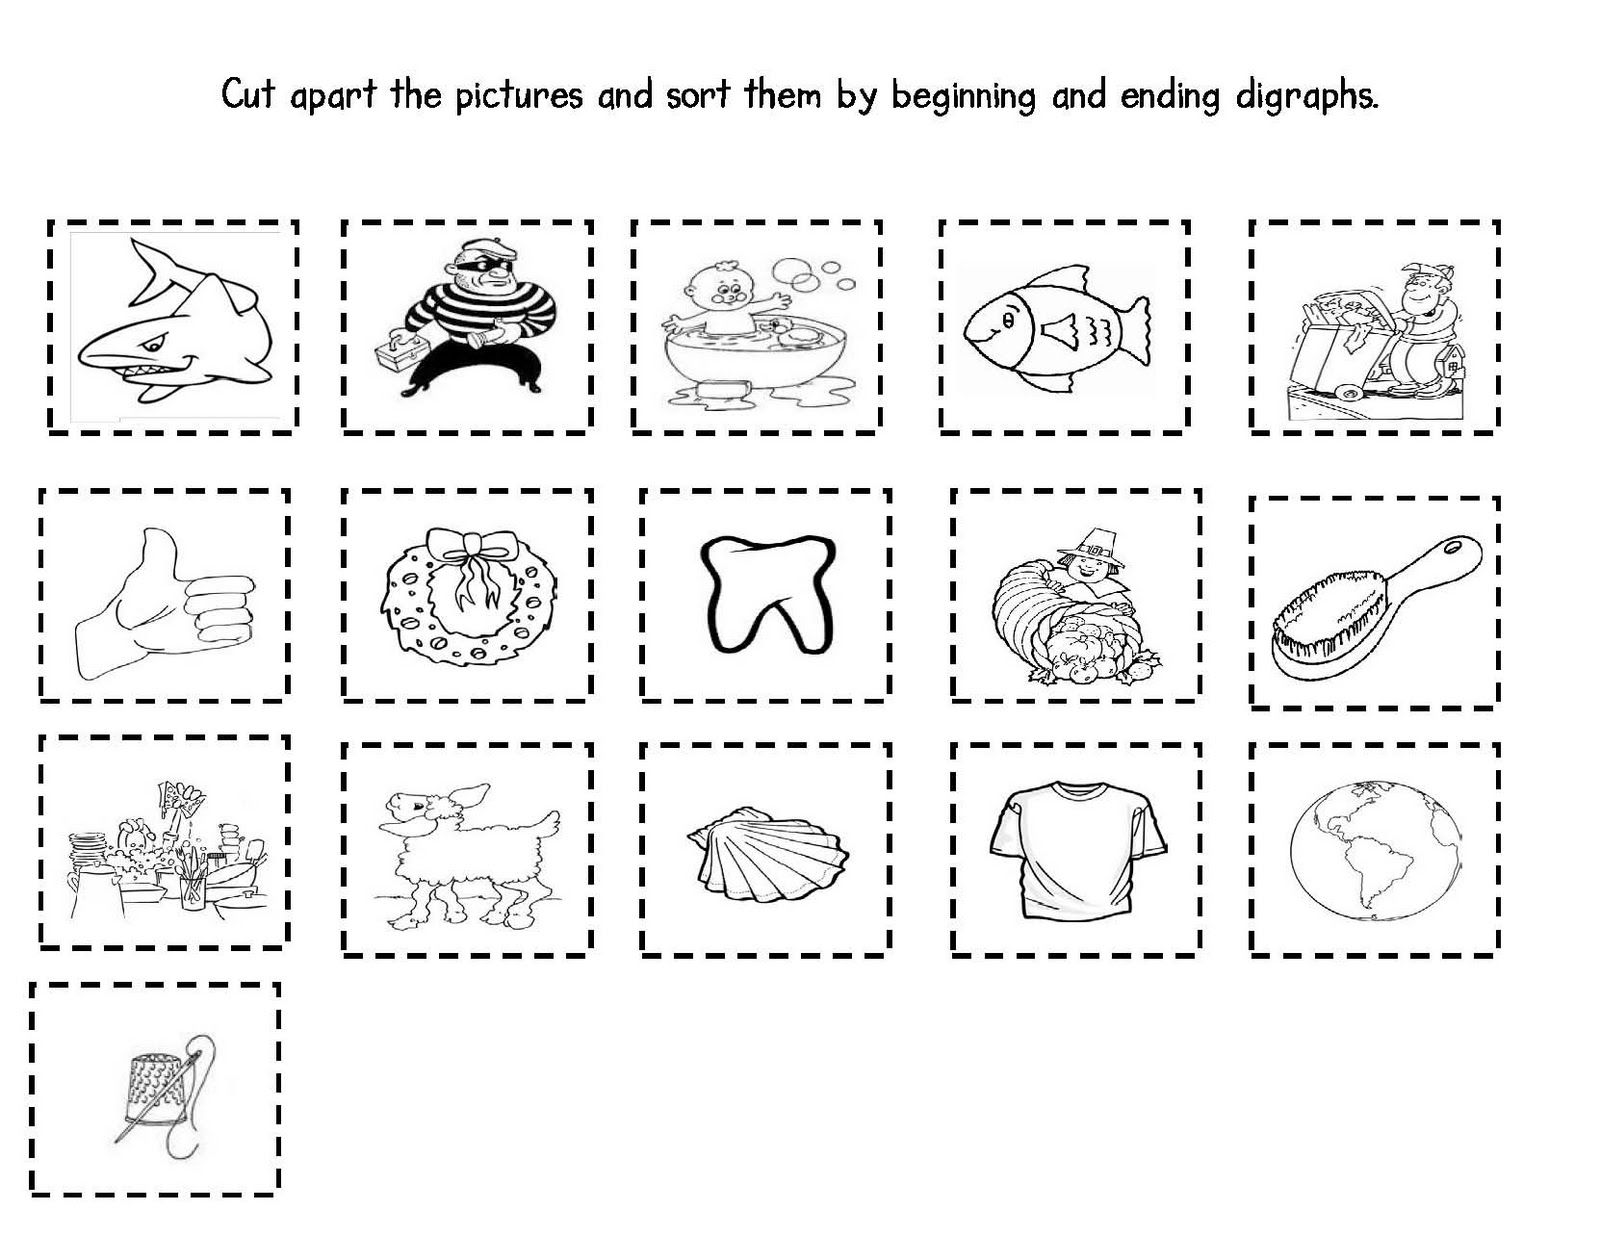 worksheet Digraph Worksheets For First Grade first grade and fabulous treasures digraphs reading digraphs